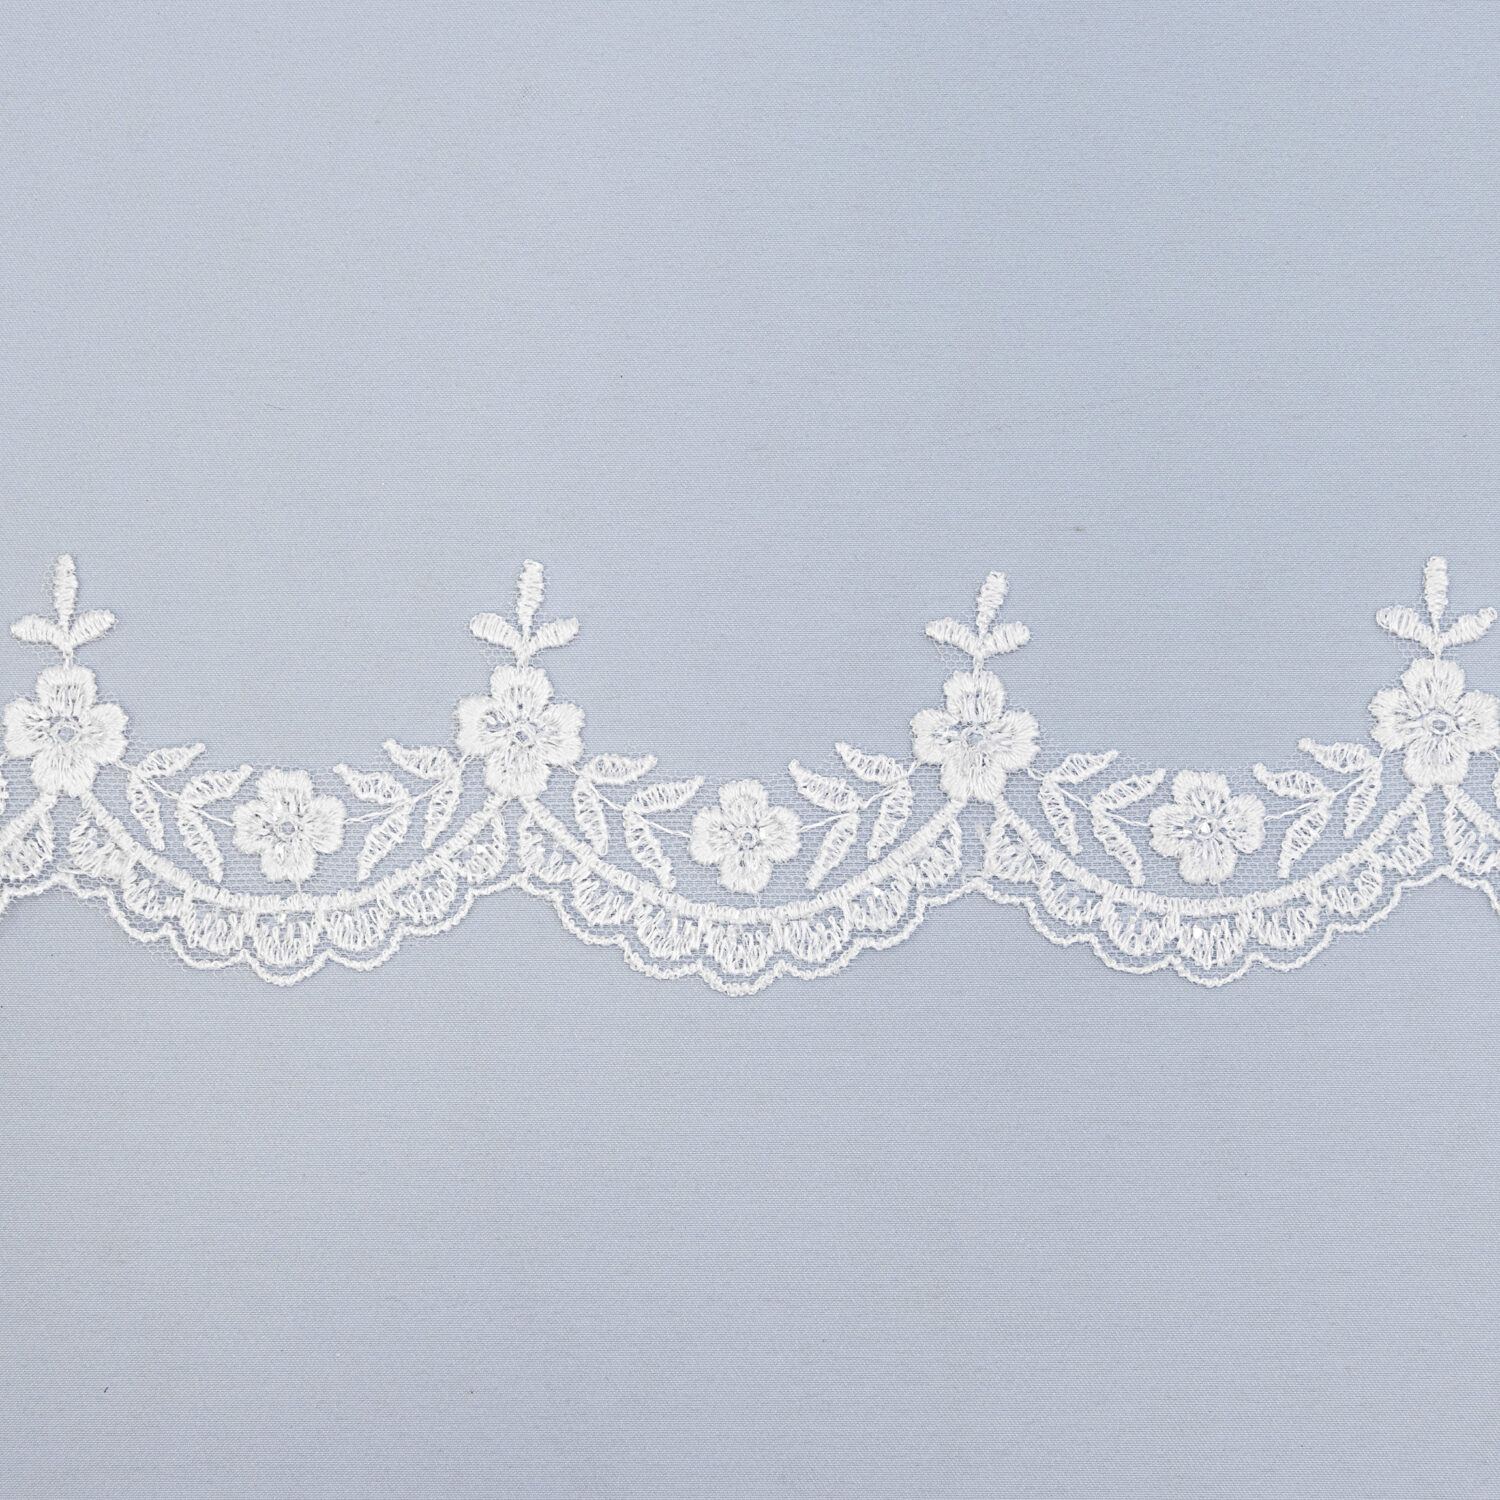 Sequined lace trim AM13264F-N44